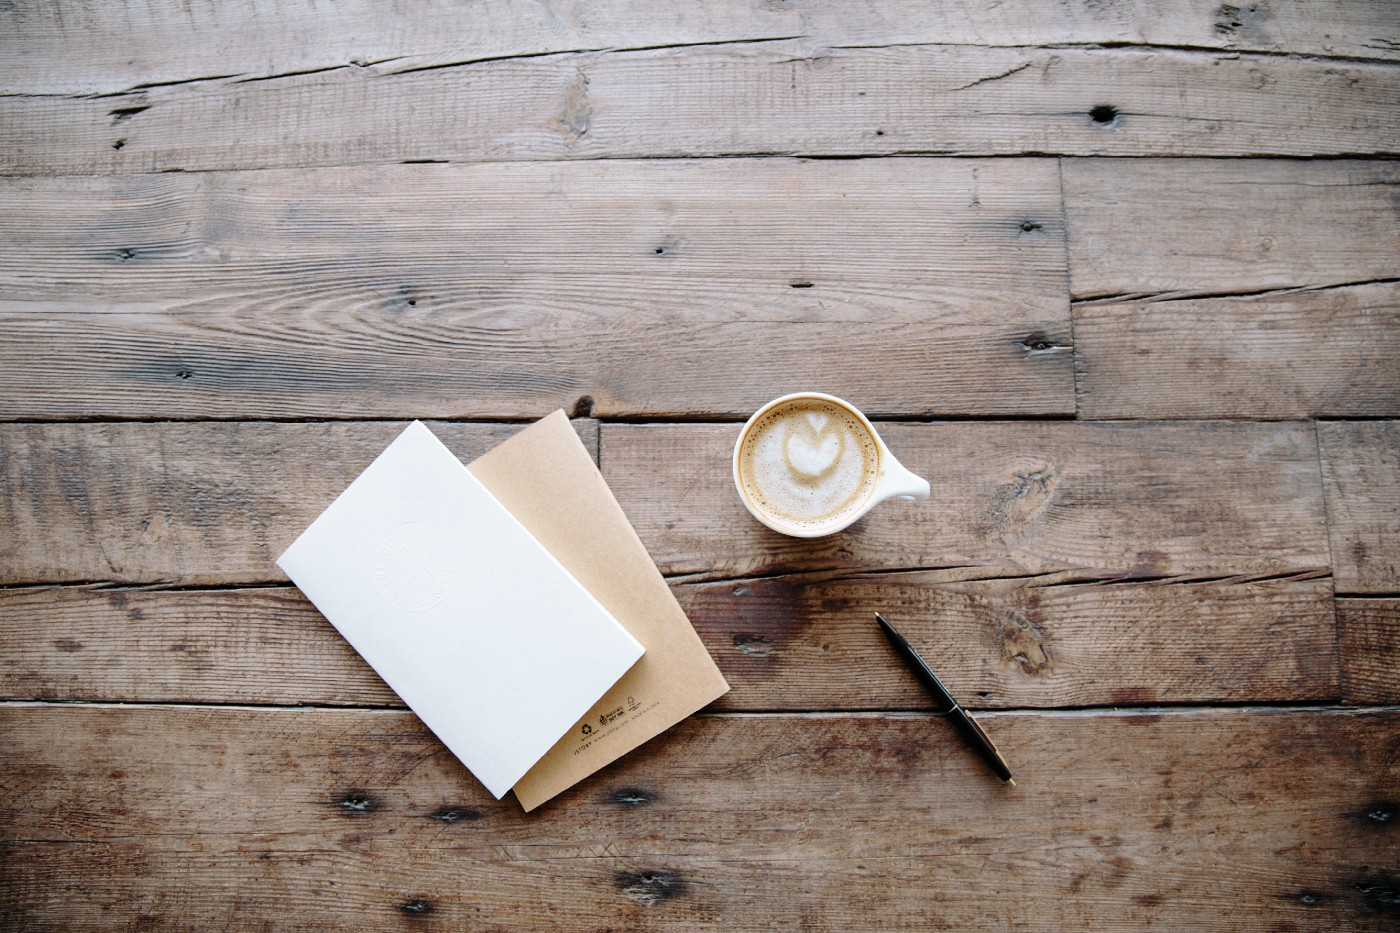 A blank sheet of paper sits next to a pen and coffee with love heart showing through froth.